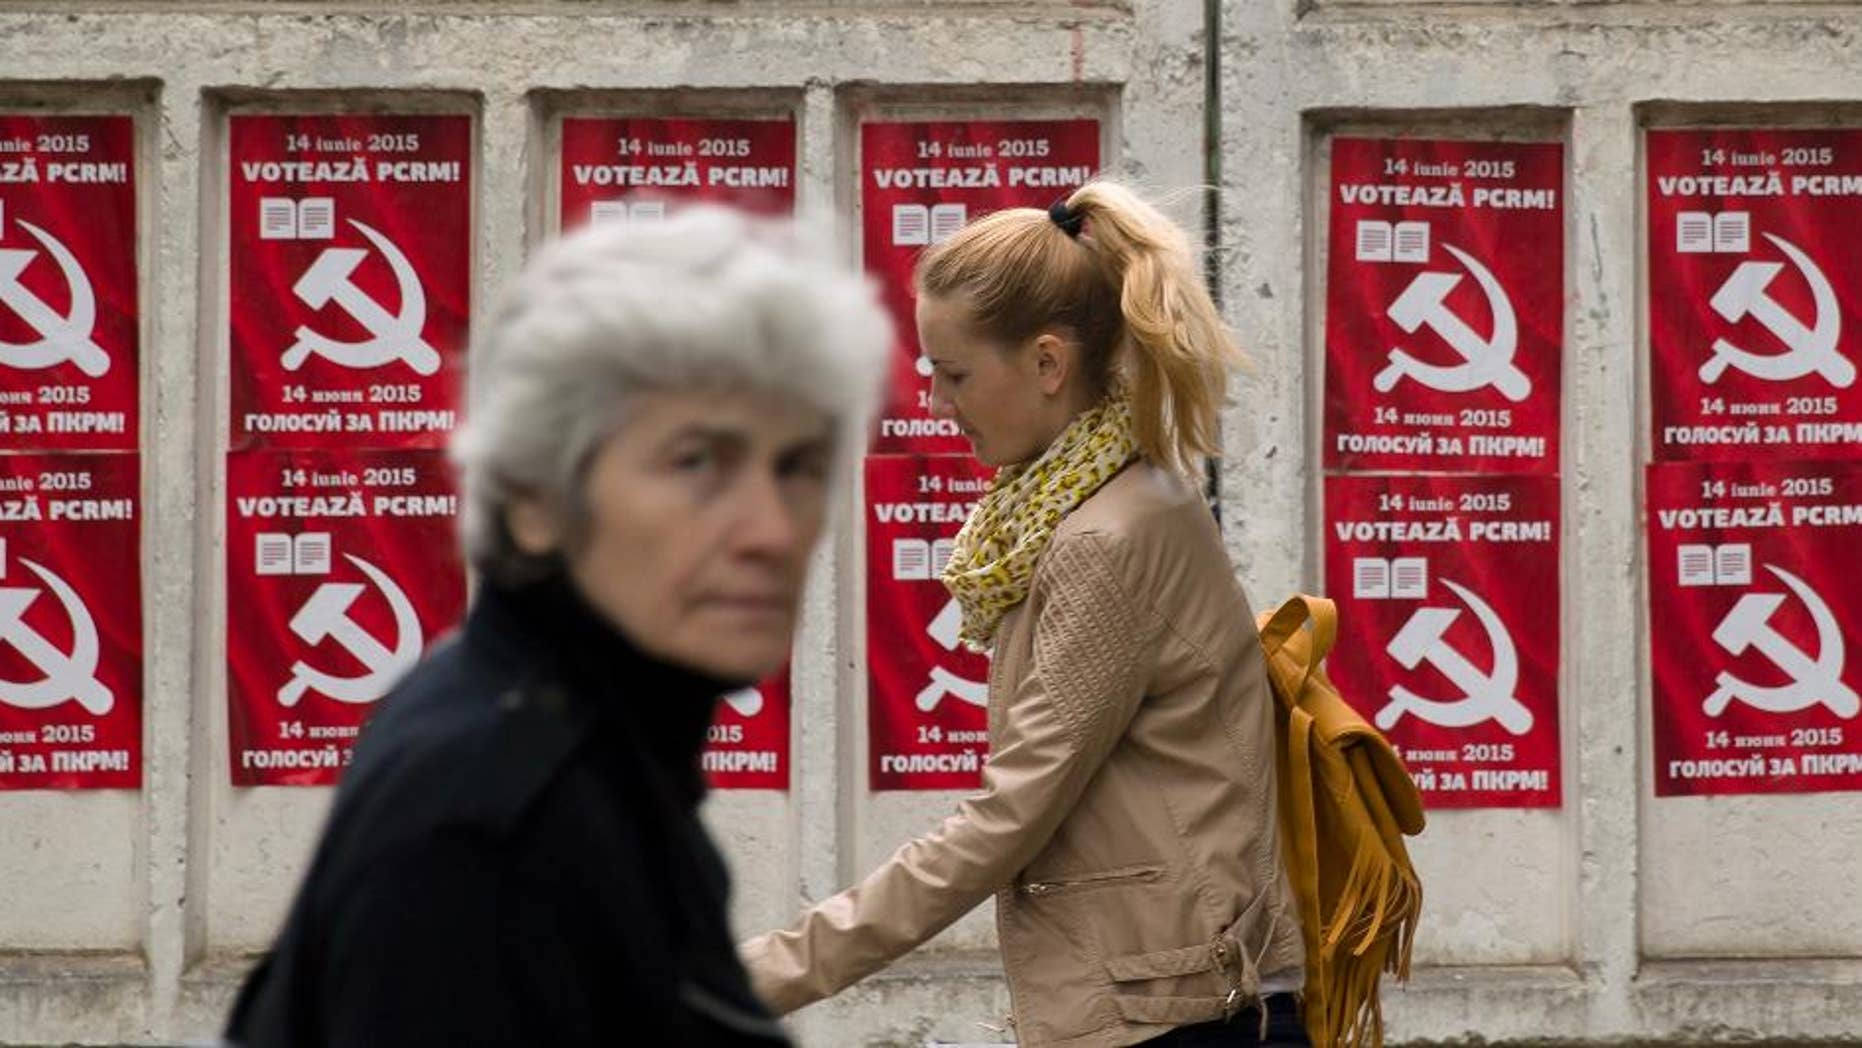 FILE - In this May 28, 2015, file photo, people walk by posters advertising the Party of Communists of Moldova, in Chisinau, Moldova. Moldovans are voting in local elections Sunday, June 14, 2015, which are seen as a test of whether the country is committed to European integration or will move closer to Russia's orbit. (AP Photo/Vadim Ghirda, File)